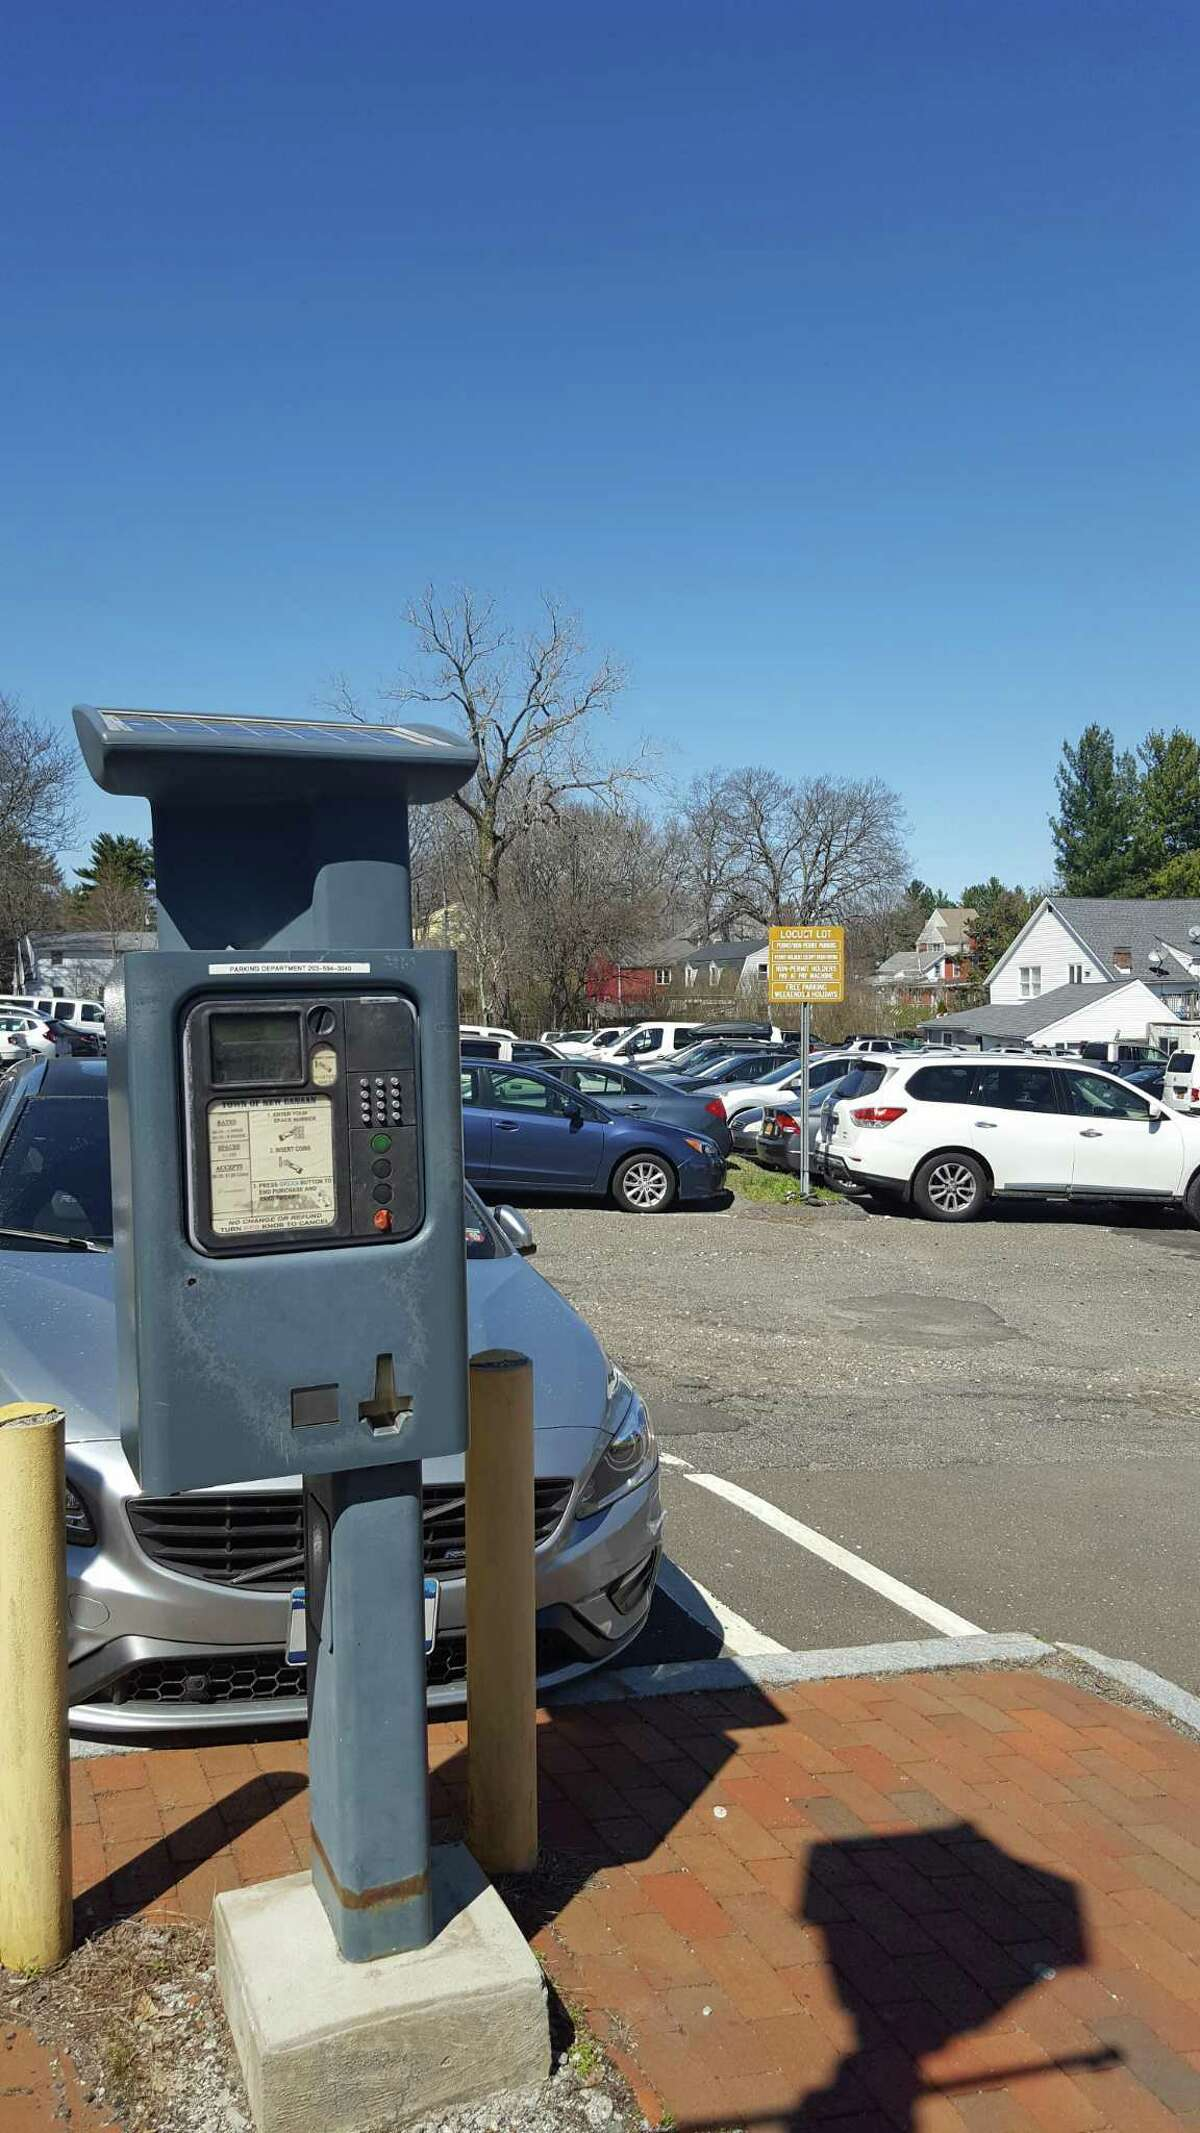 Pictured is the Town of New Canaan's parking lot on Locust Avenue. The New Canaan Thrift Shop is having its first Grand Summer Tag Sale on Saturday, June 12, from 10 a.m. to 4 p.m., in the town's Locust Avenue parking lot, which is adjacent to the thrift shop. All social distancing rules will apply at the event amid the coronavirus pandemic.